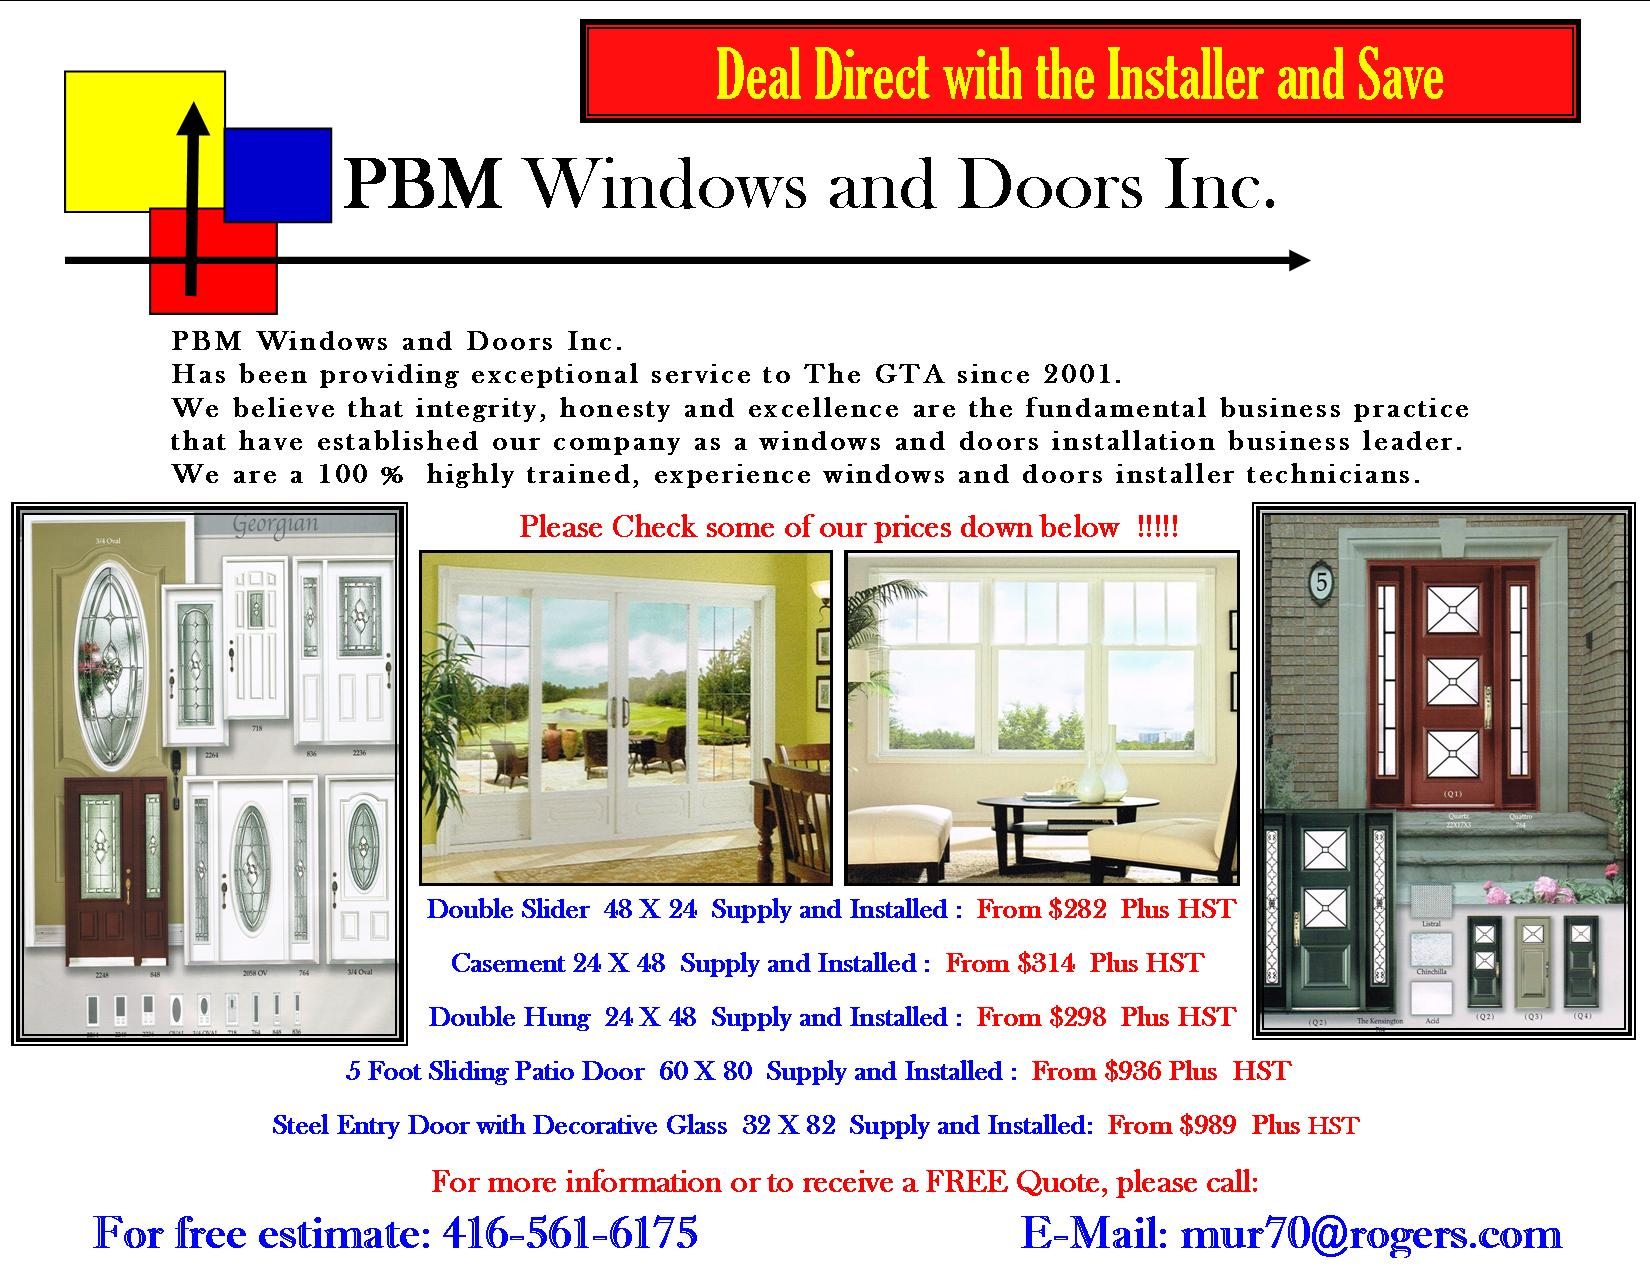 Deal DIRECT With The Installer And SAVE - Pbm Flyer 5